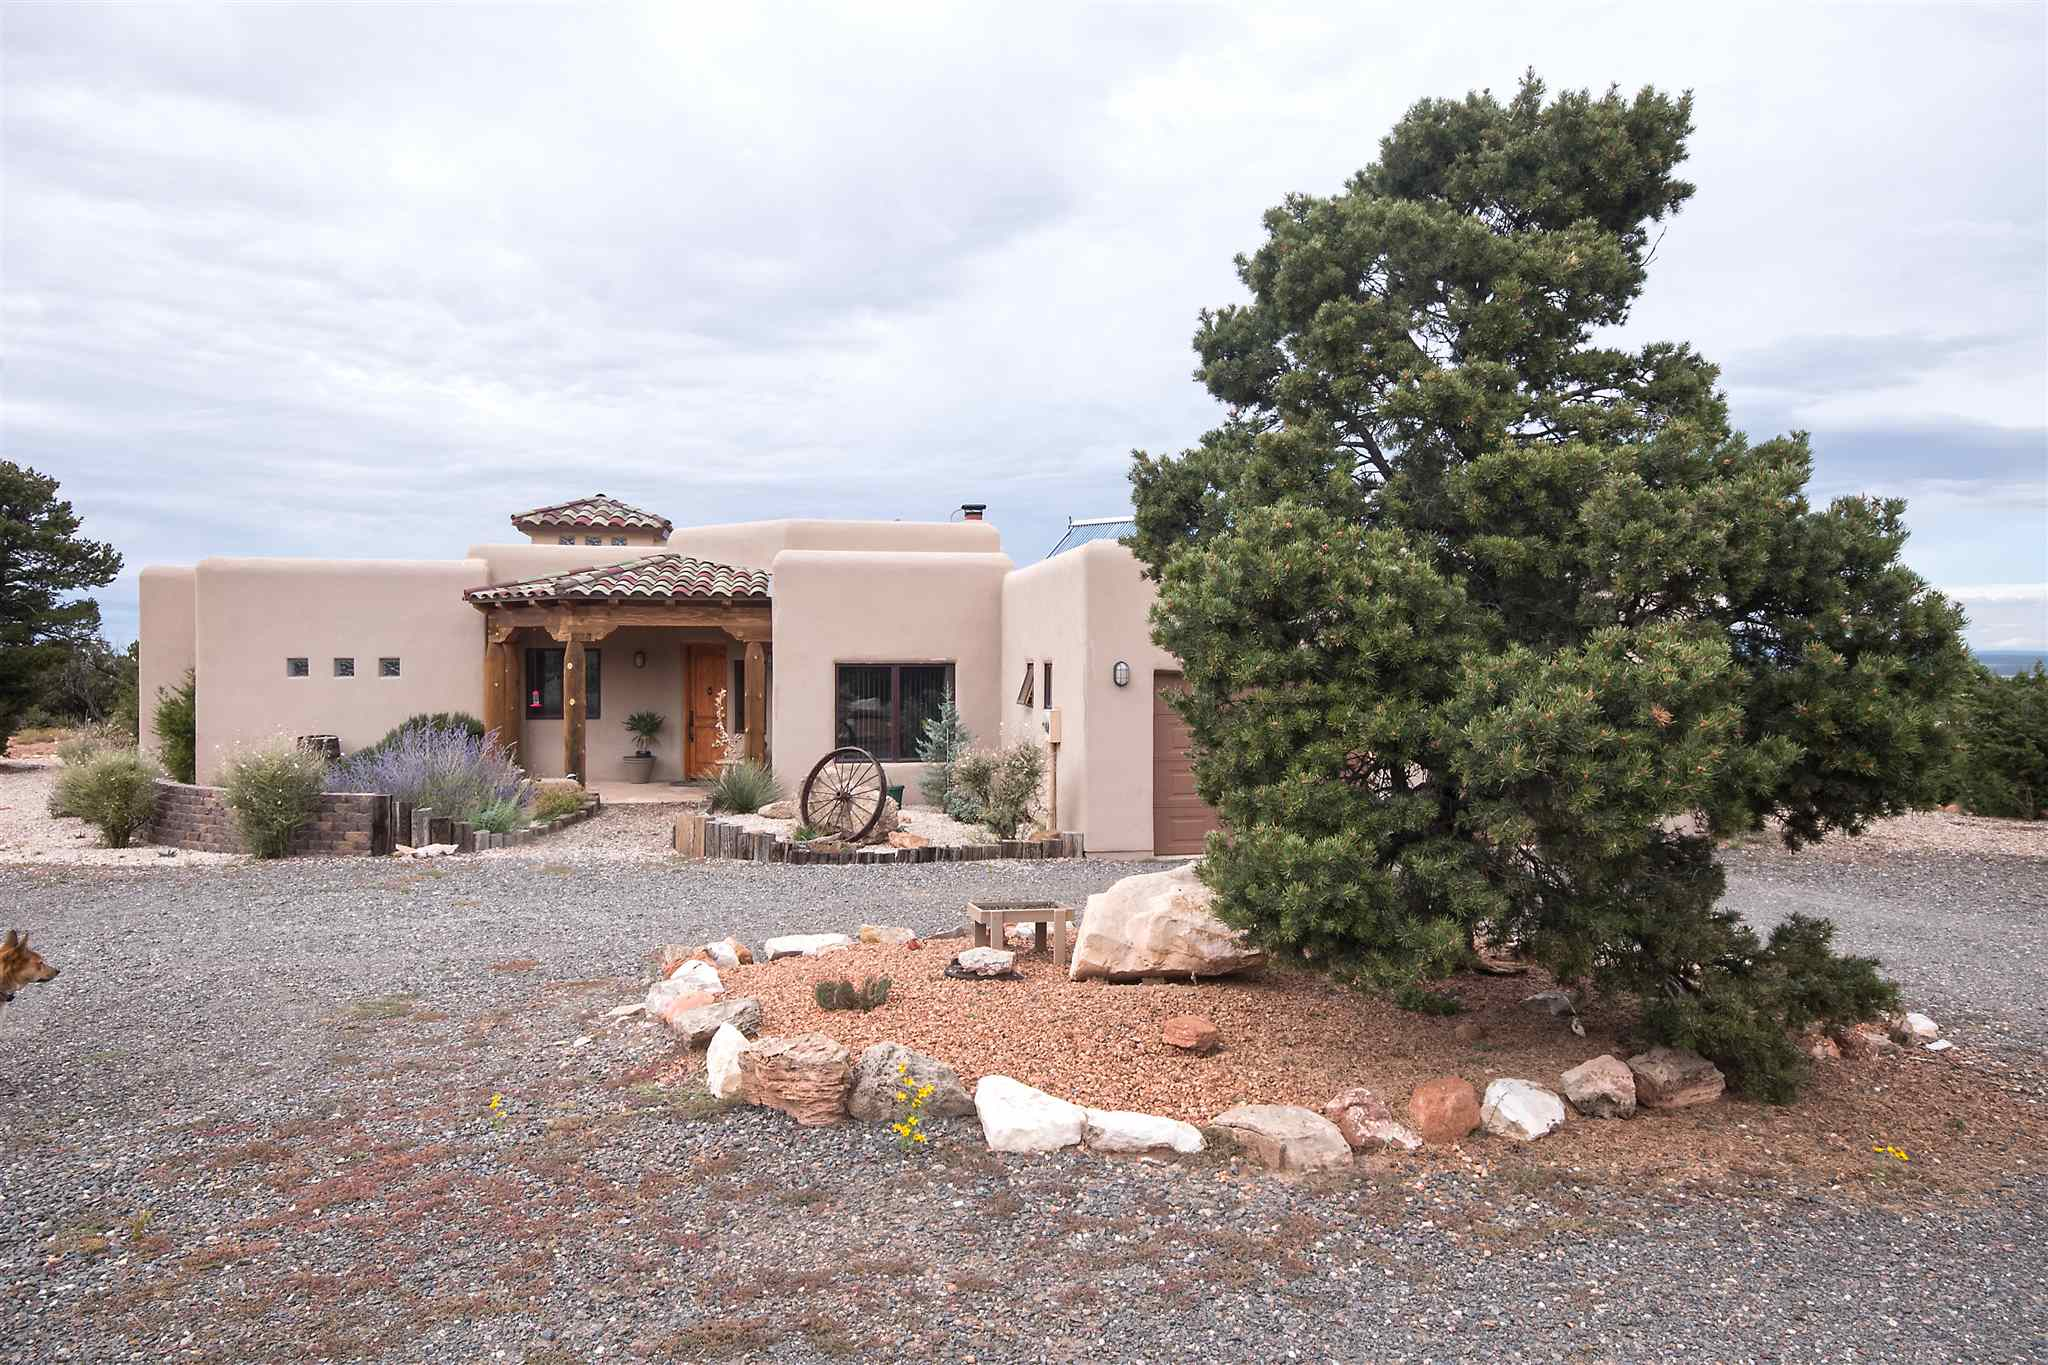 "Deer Canyon Preserve horse property surrounded by nature with sweeping views of the Manzano Mountains and Chupedero Mesa. This special conservation oriented community comprises over 18,000 acres of which half are protected by conservation easements. There miles of hiking and riding trails and wildlife abounds. This custom built house is super energy efficient and offers open concept living with multiple entertainment spaces both indoors and out. Brick floors throughout and Southwestern design with vigas and wood accents. Check out this special place to call home. This is a perfect retirement home, second home or ""work from home"" spot. Set up an appointment to see it today"